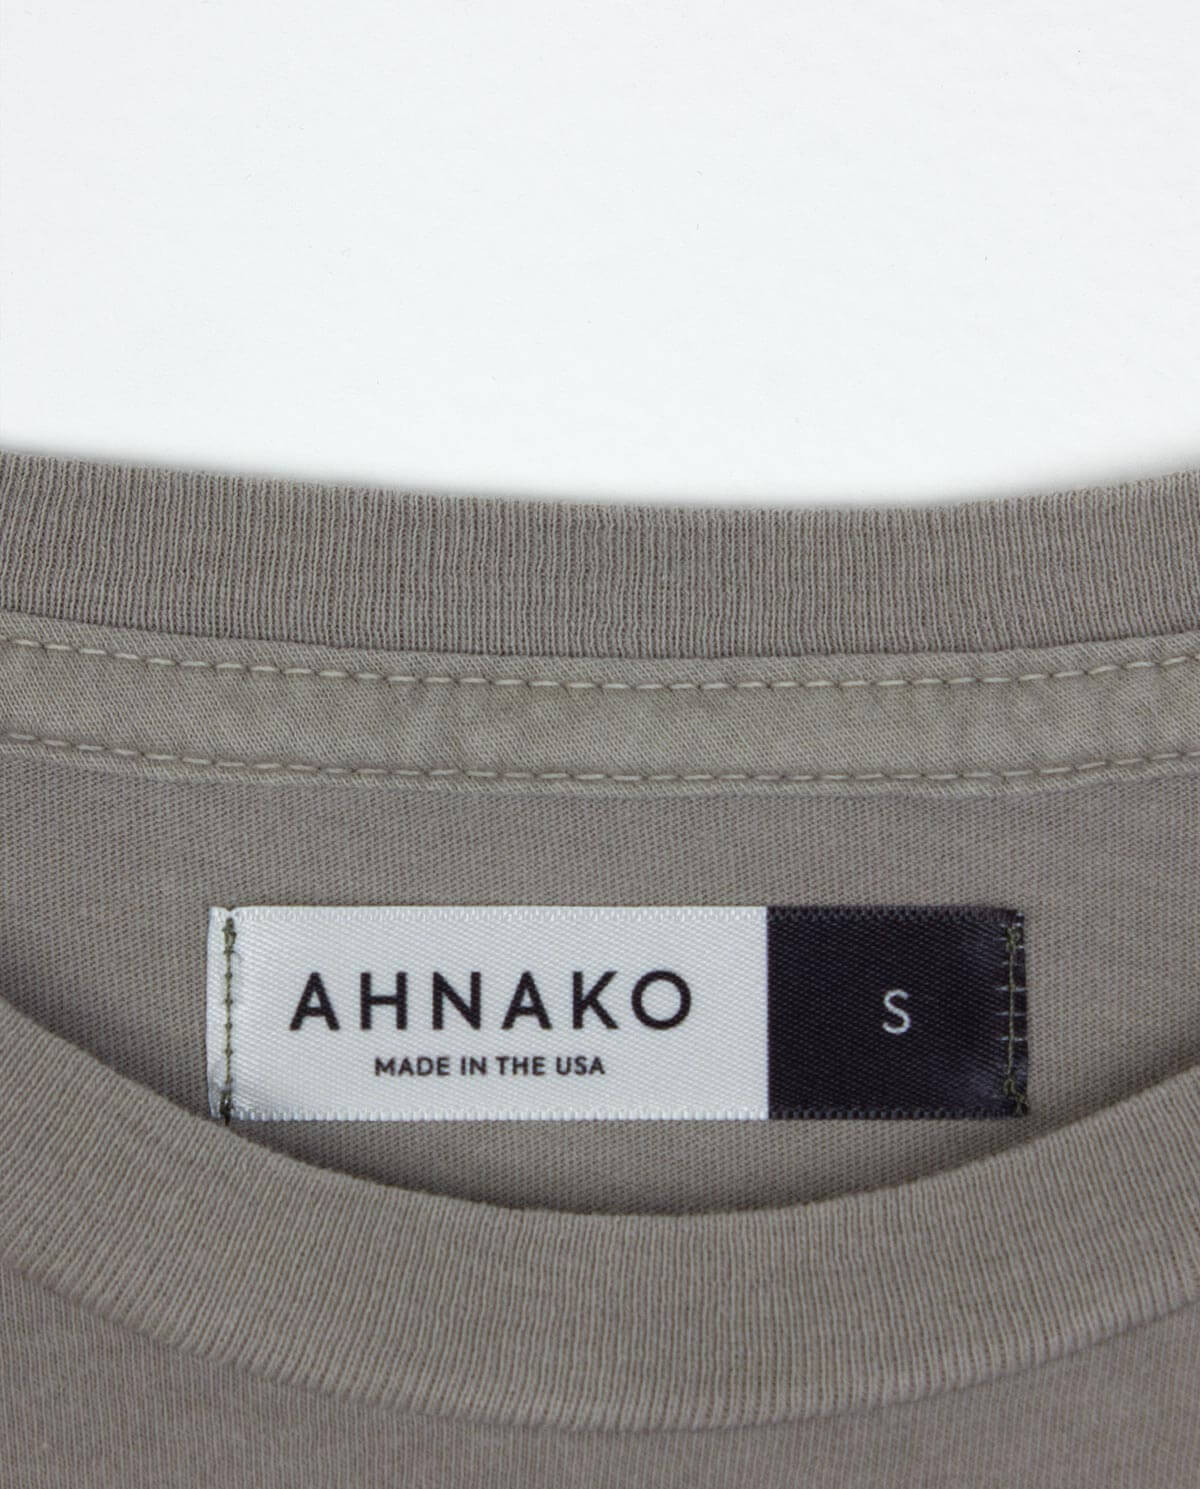 Ahnako Basic Tee Shirt - Suva Grey - Clothing Tag